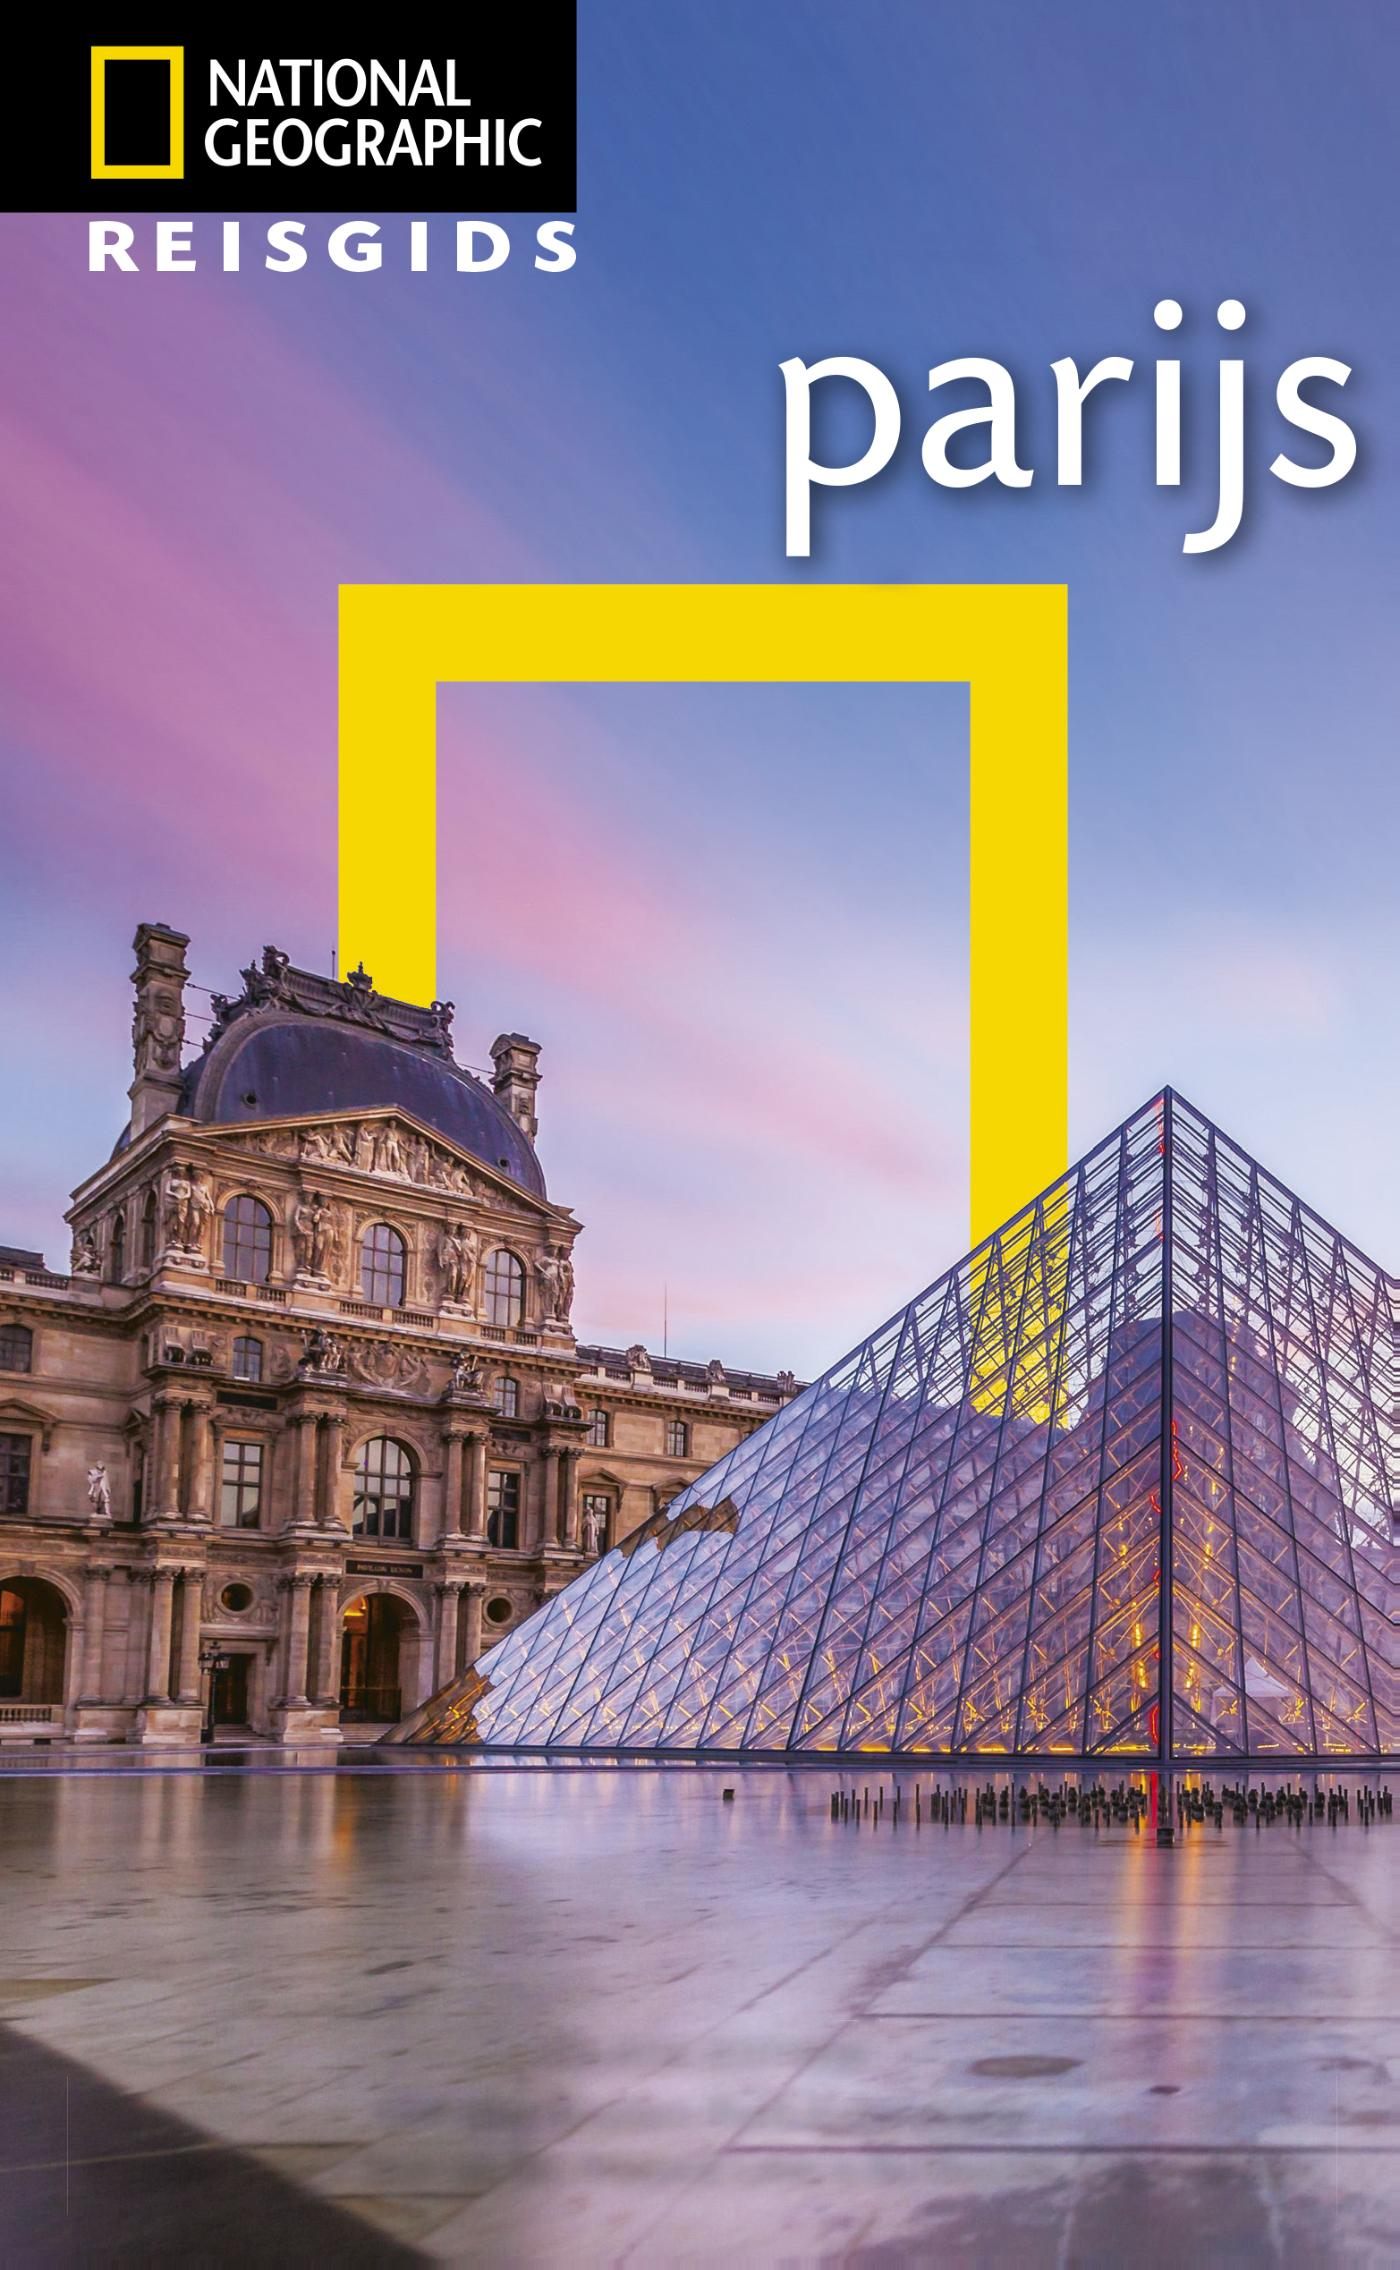 National Geographic Reisgids: Parijs